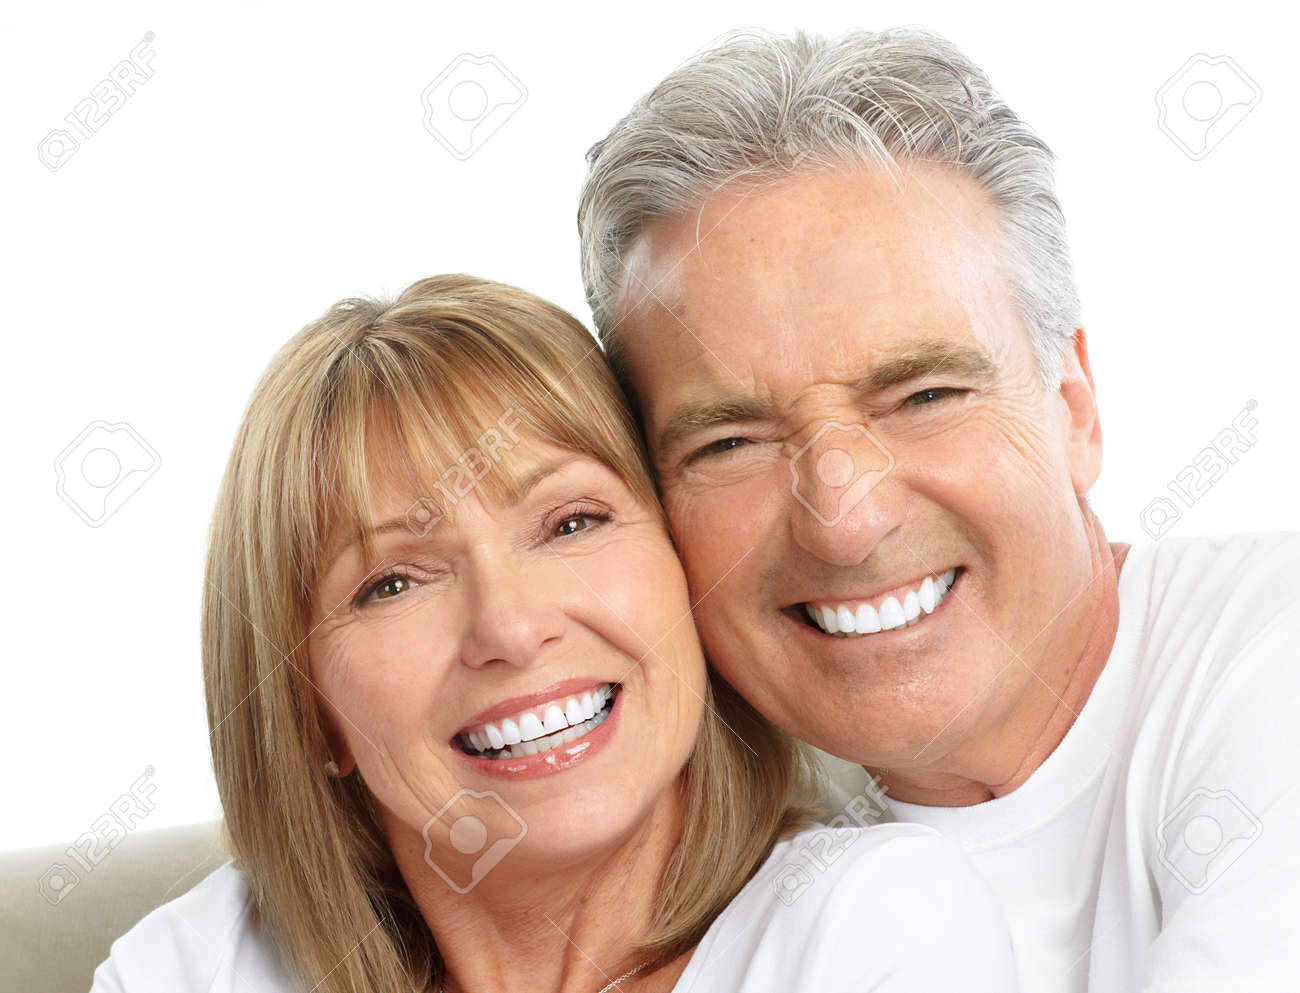 Happy seniors couple in love. Healthy teeth. Isolated over white background Stock Photo - 7607096